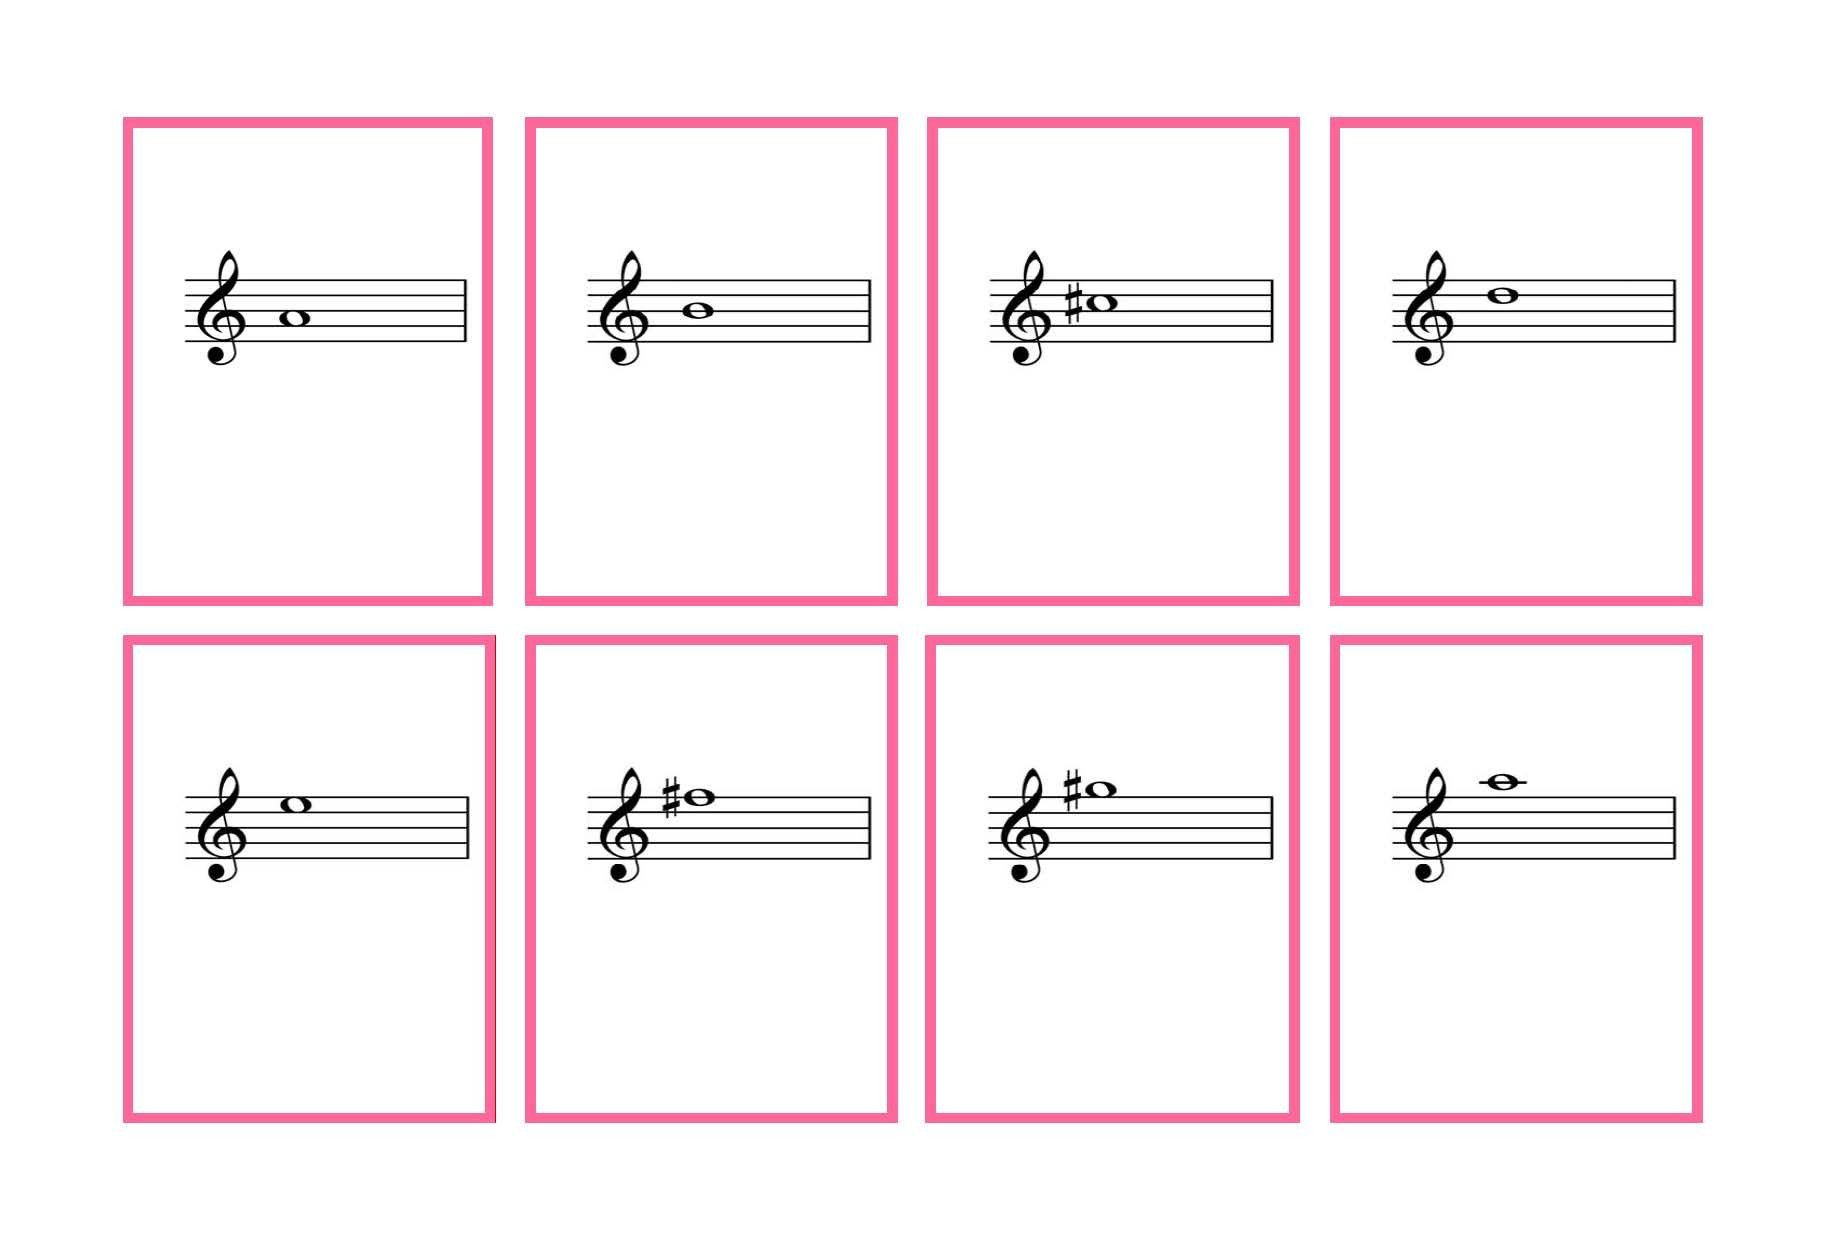 photo regarding Music Note Flashcards Printable named Printable Audio Take note Flashcards prices Free of charge Printables